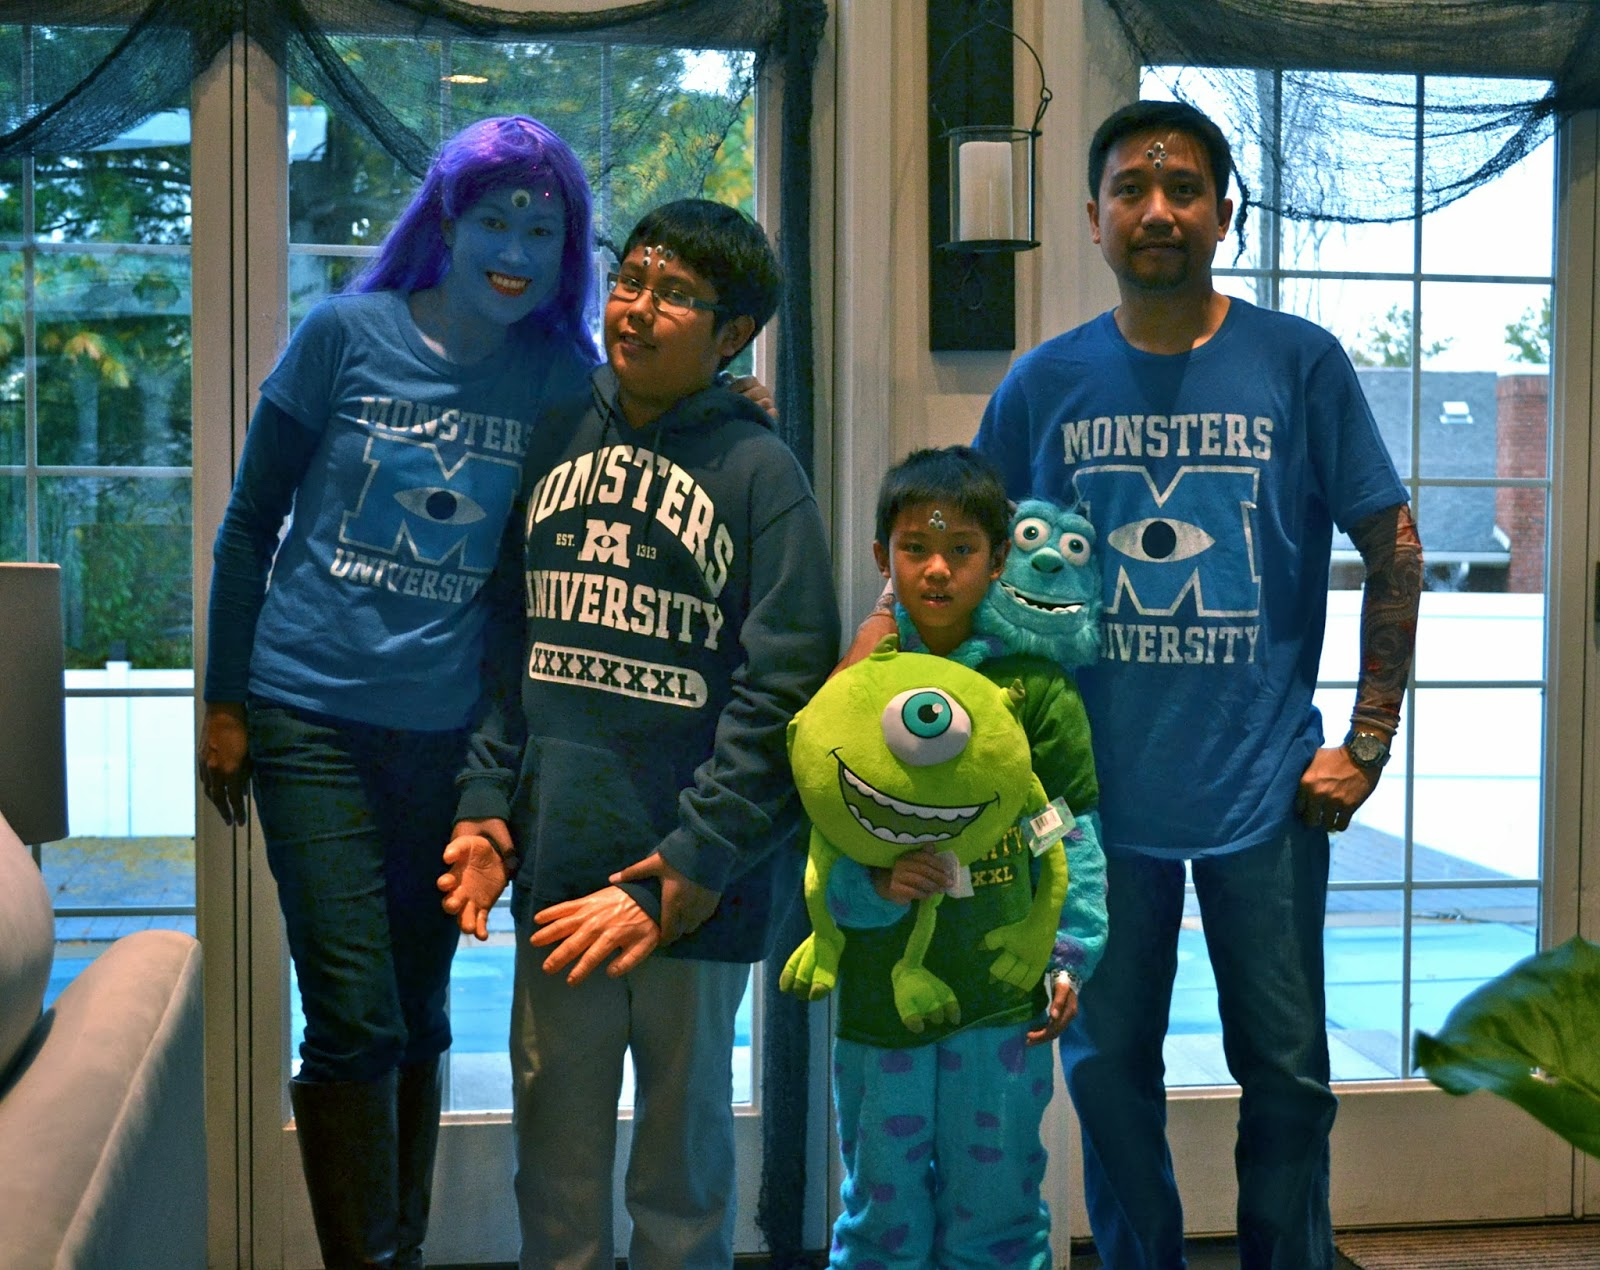 life & home at 2102: halloween costumes 2013 - monsters university